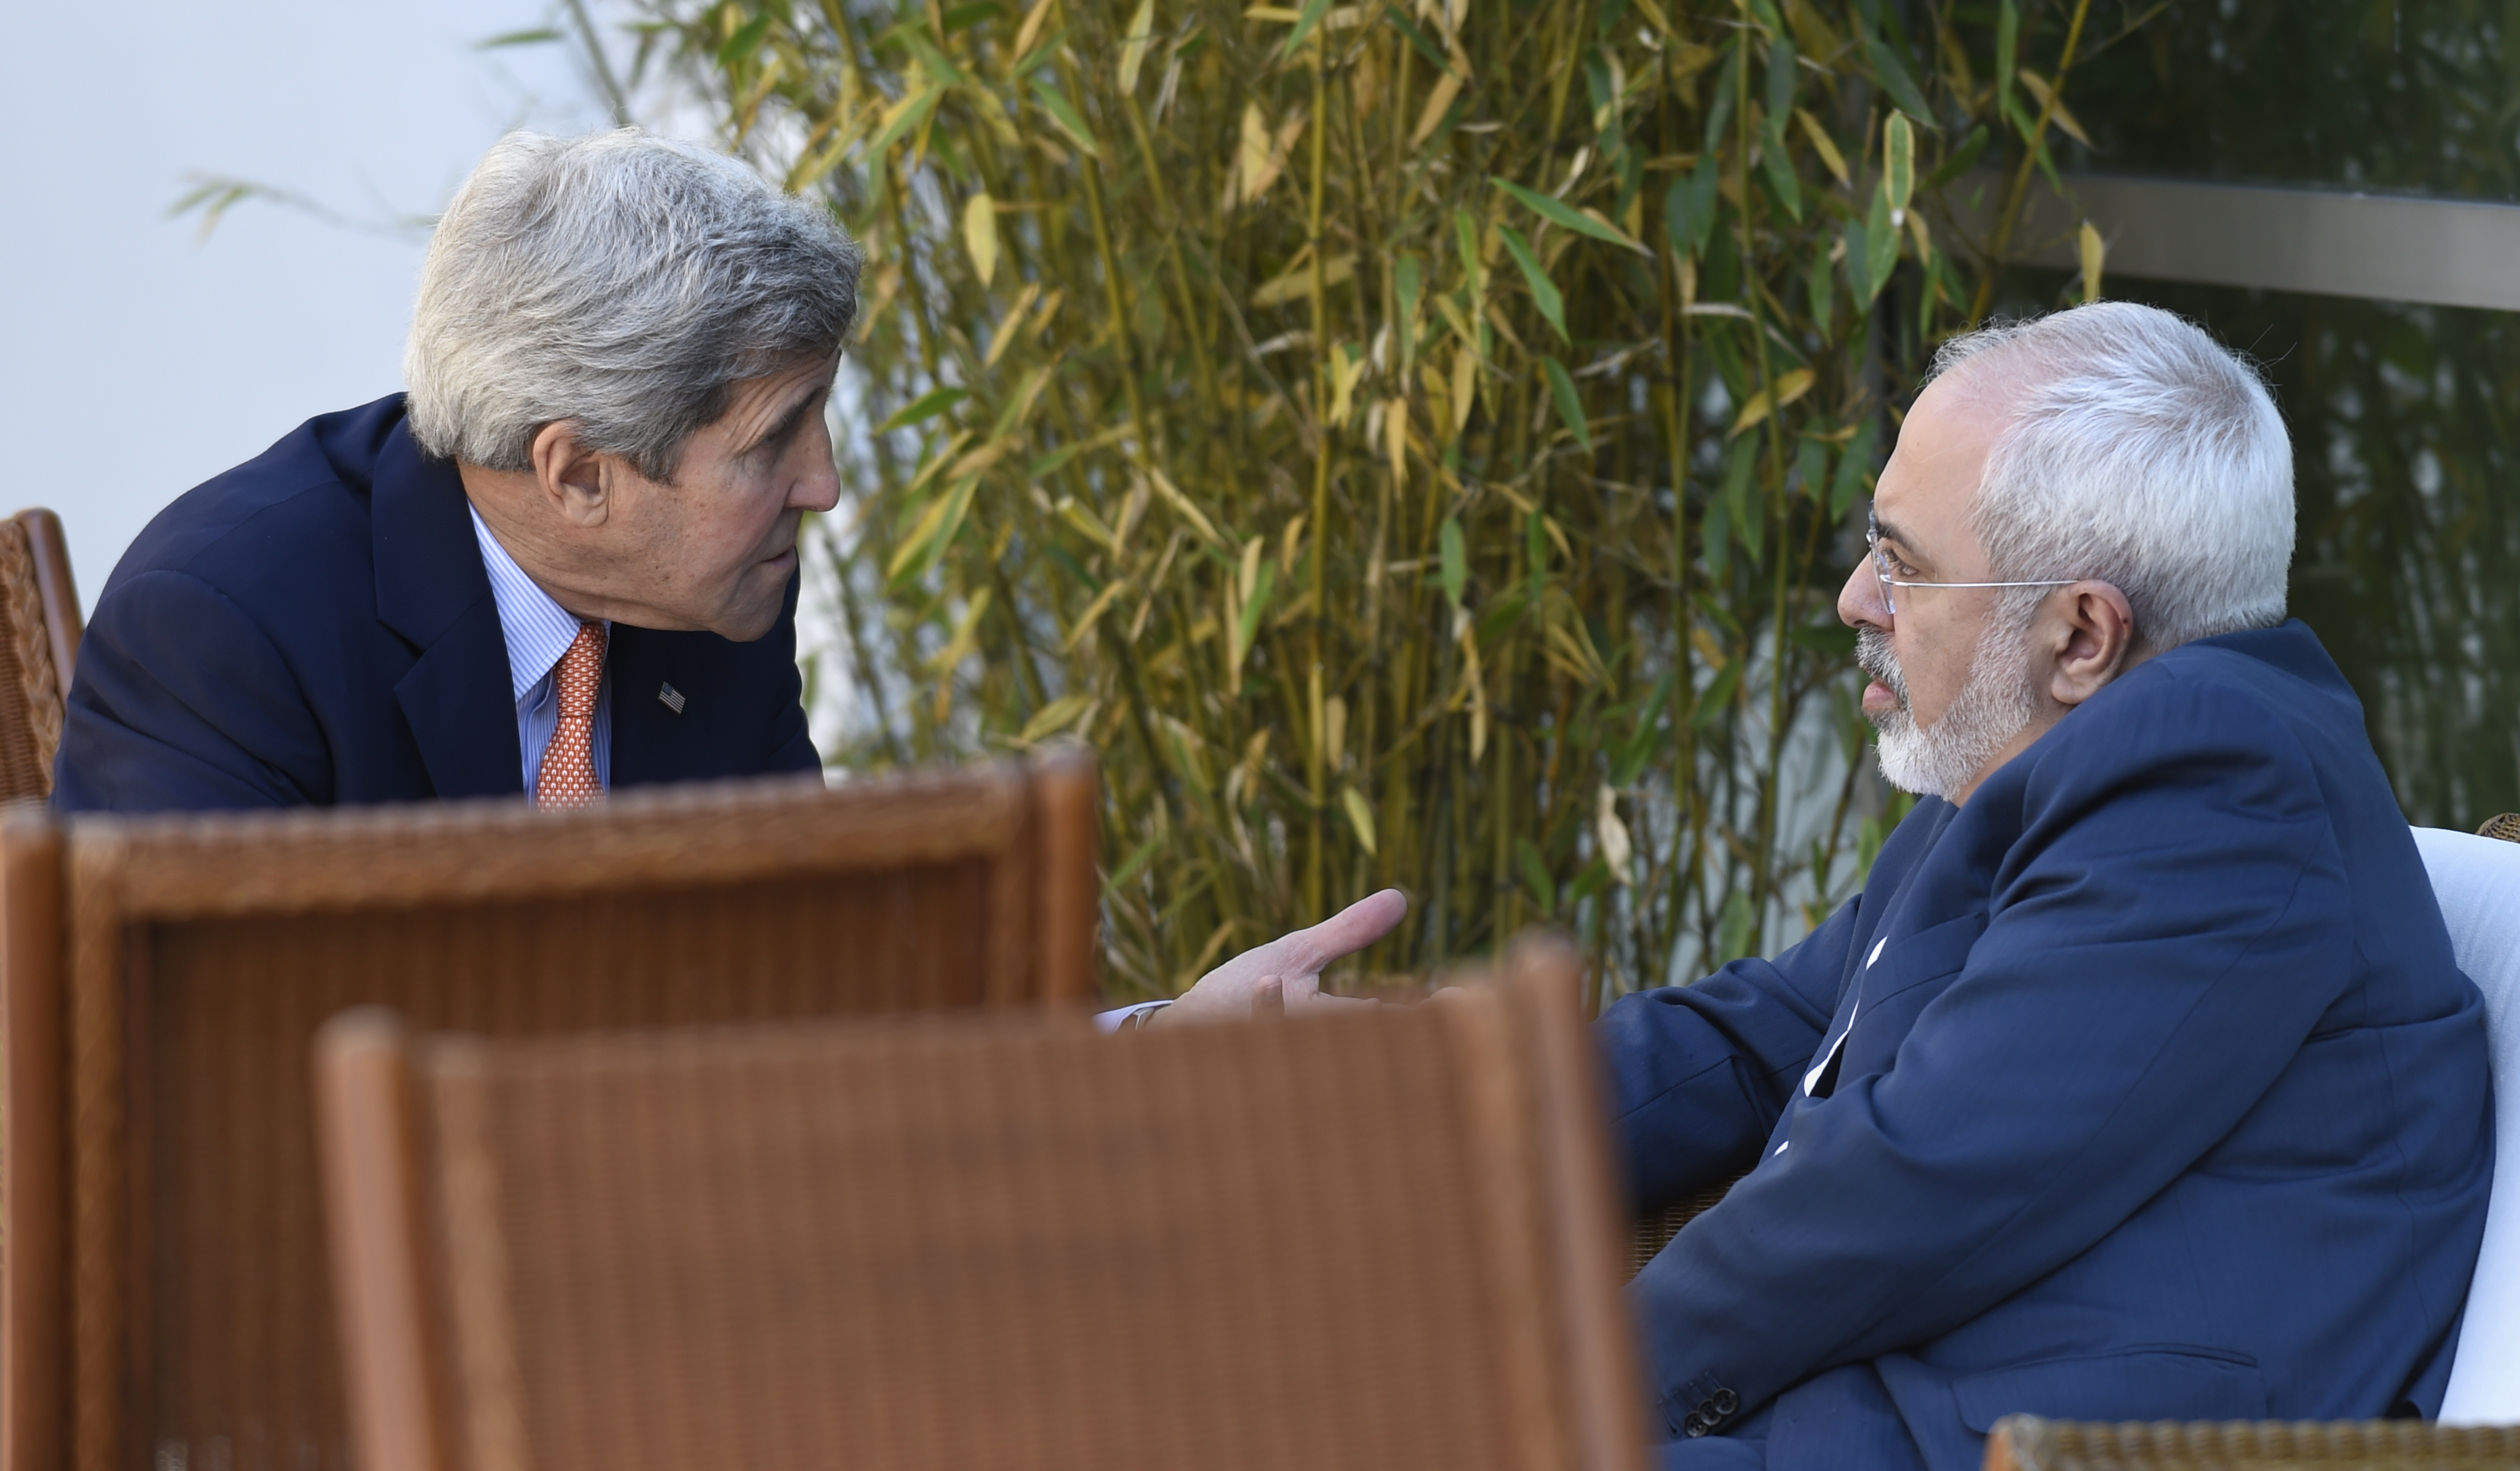 U.S. Secretary of State John Kerry (L) talks with Iranian Foreign Minister Mohammad Javad Zarif, in Geneva, Switzerland on May 30, 2015.